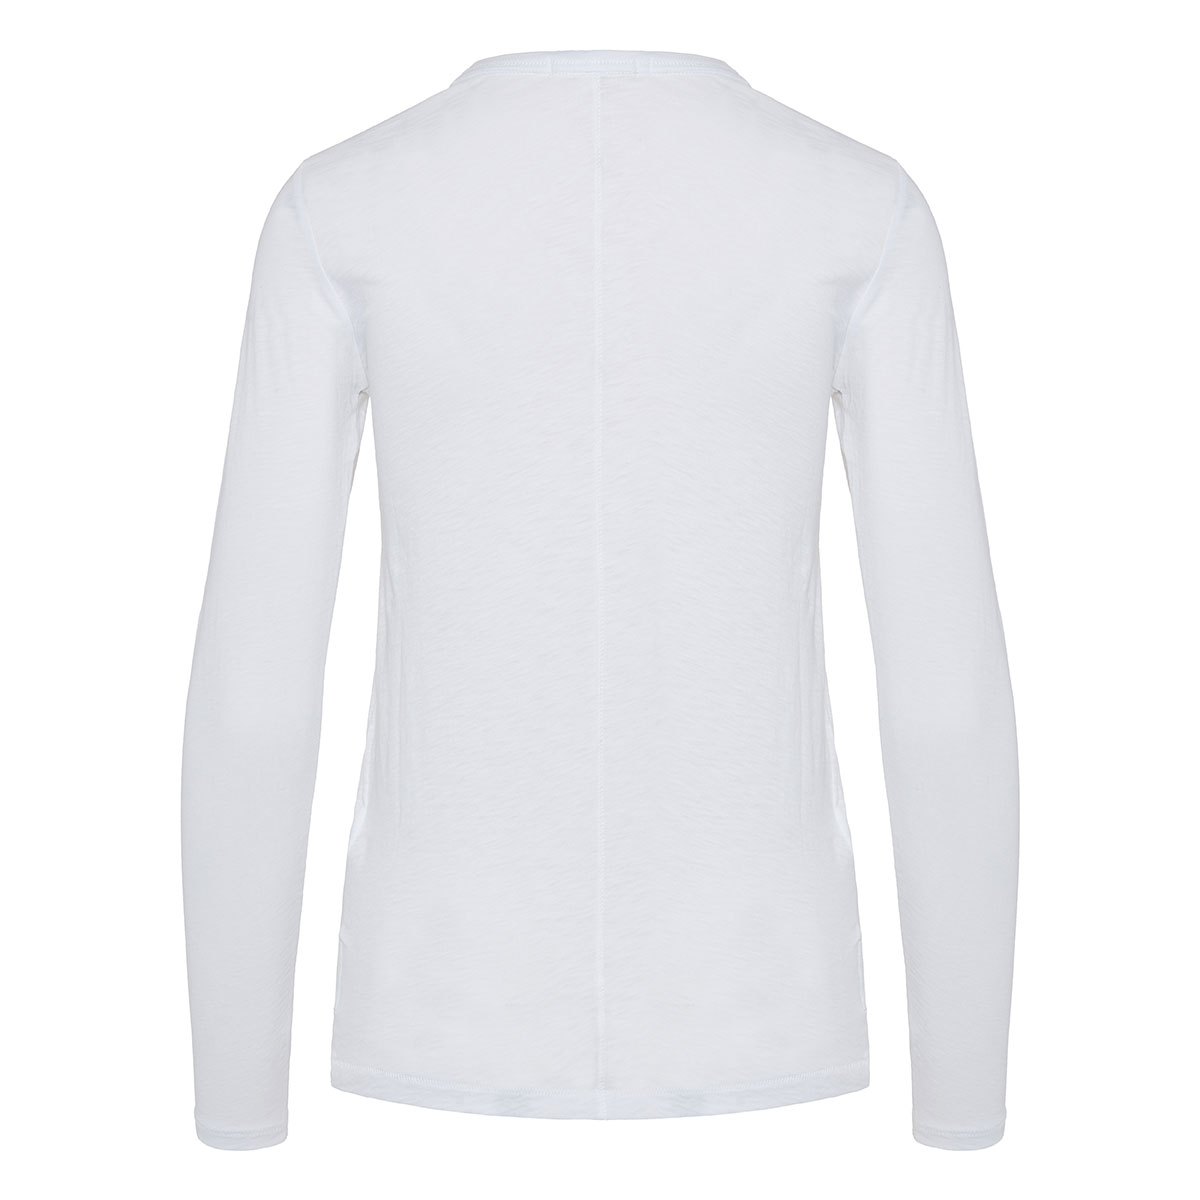 The Slub cotton blouse